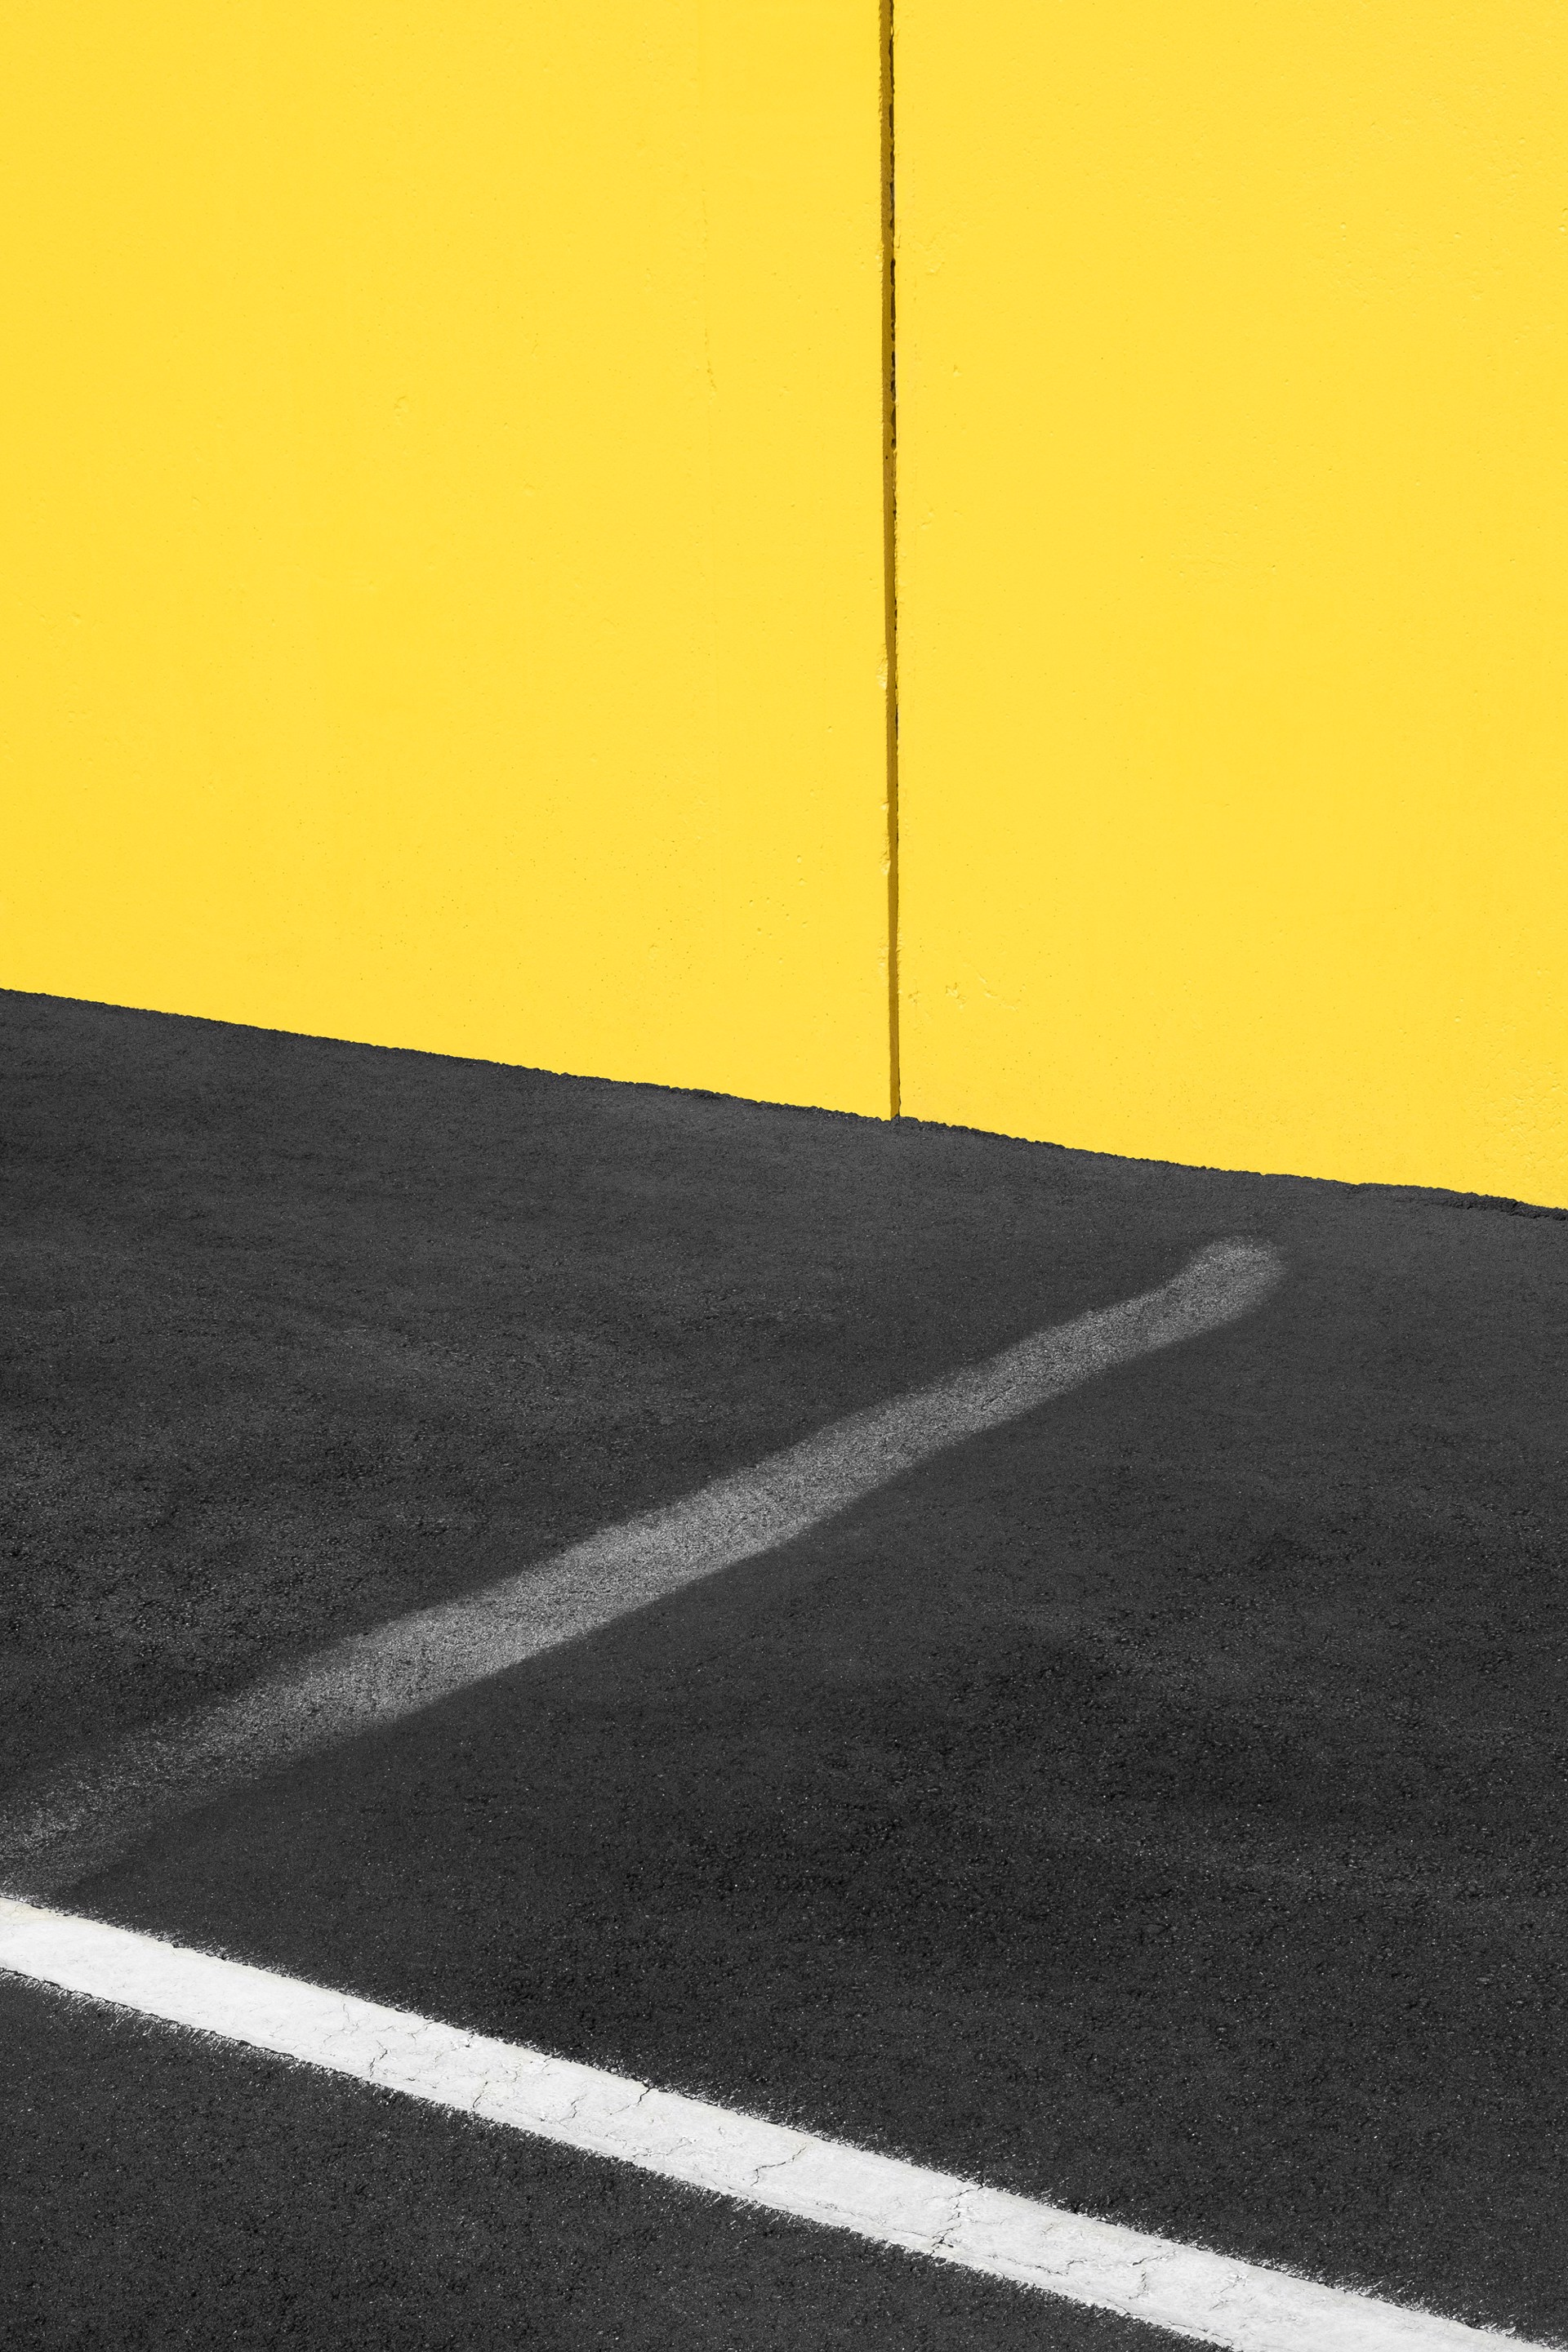 Yellow and Black with White by Jon Setter